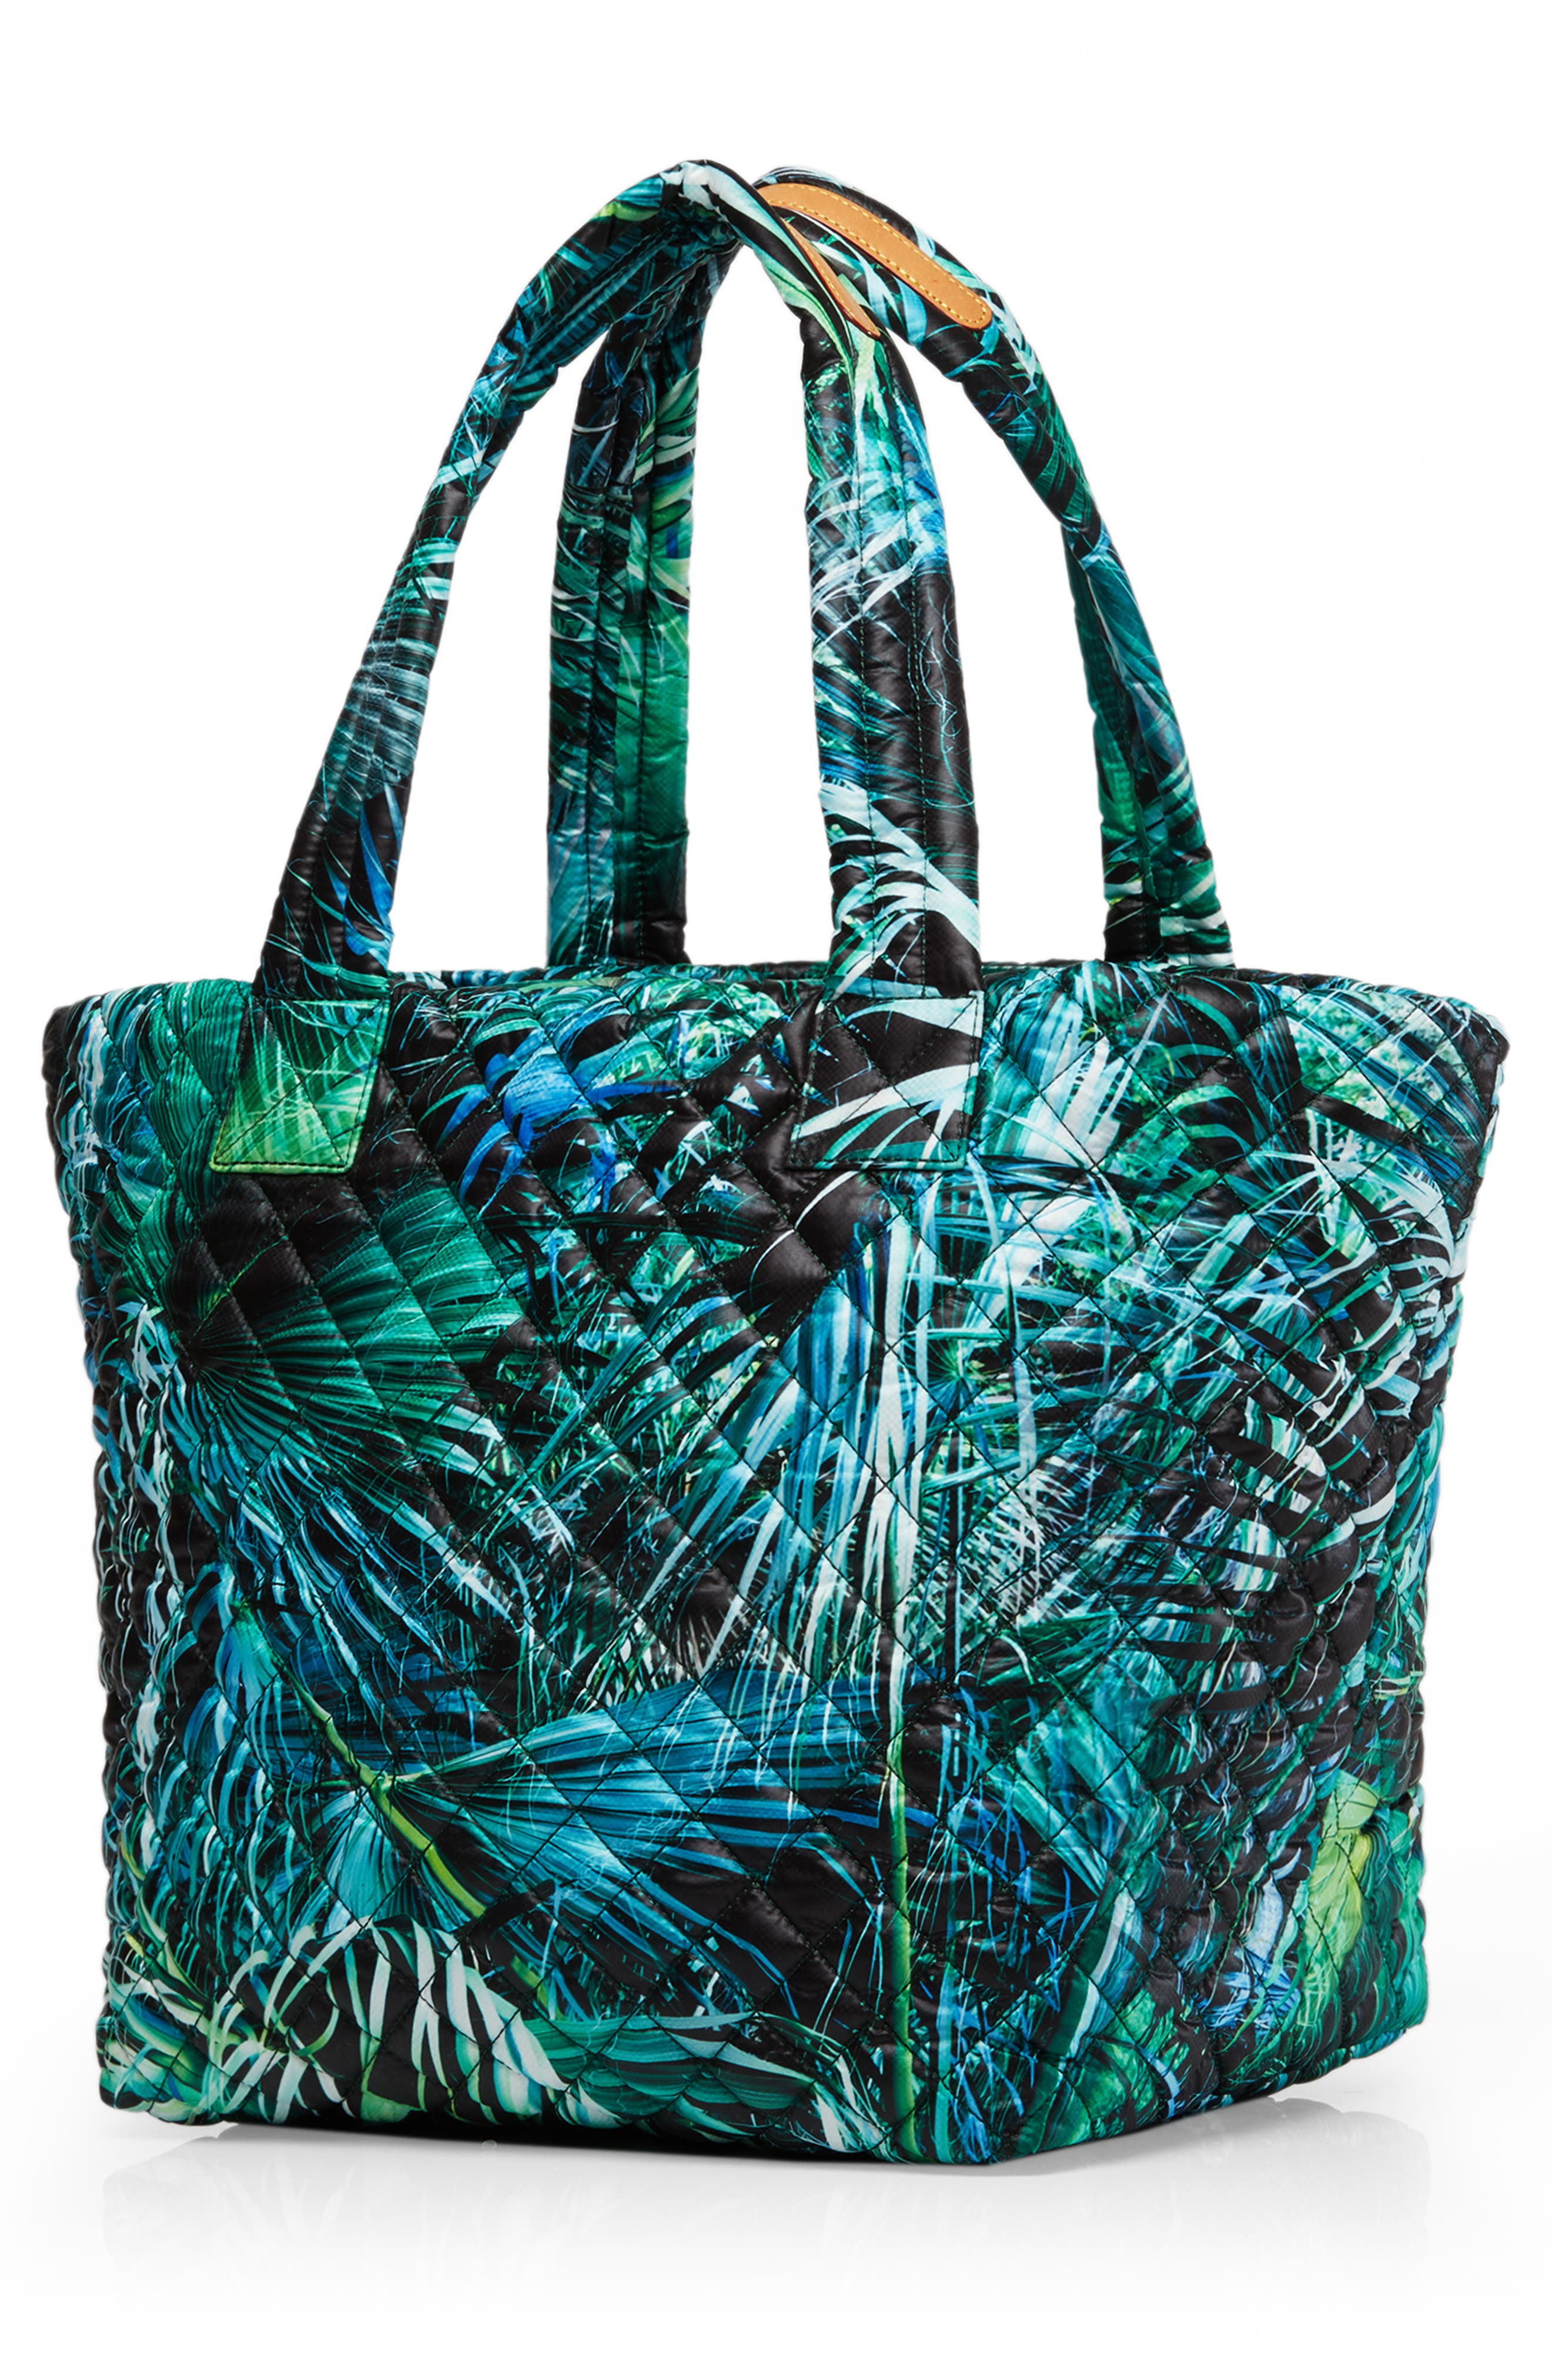 092e67b7c00d Tote Bags Vacation